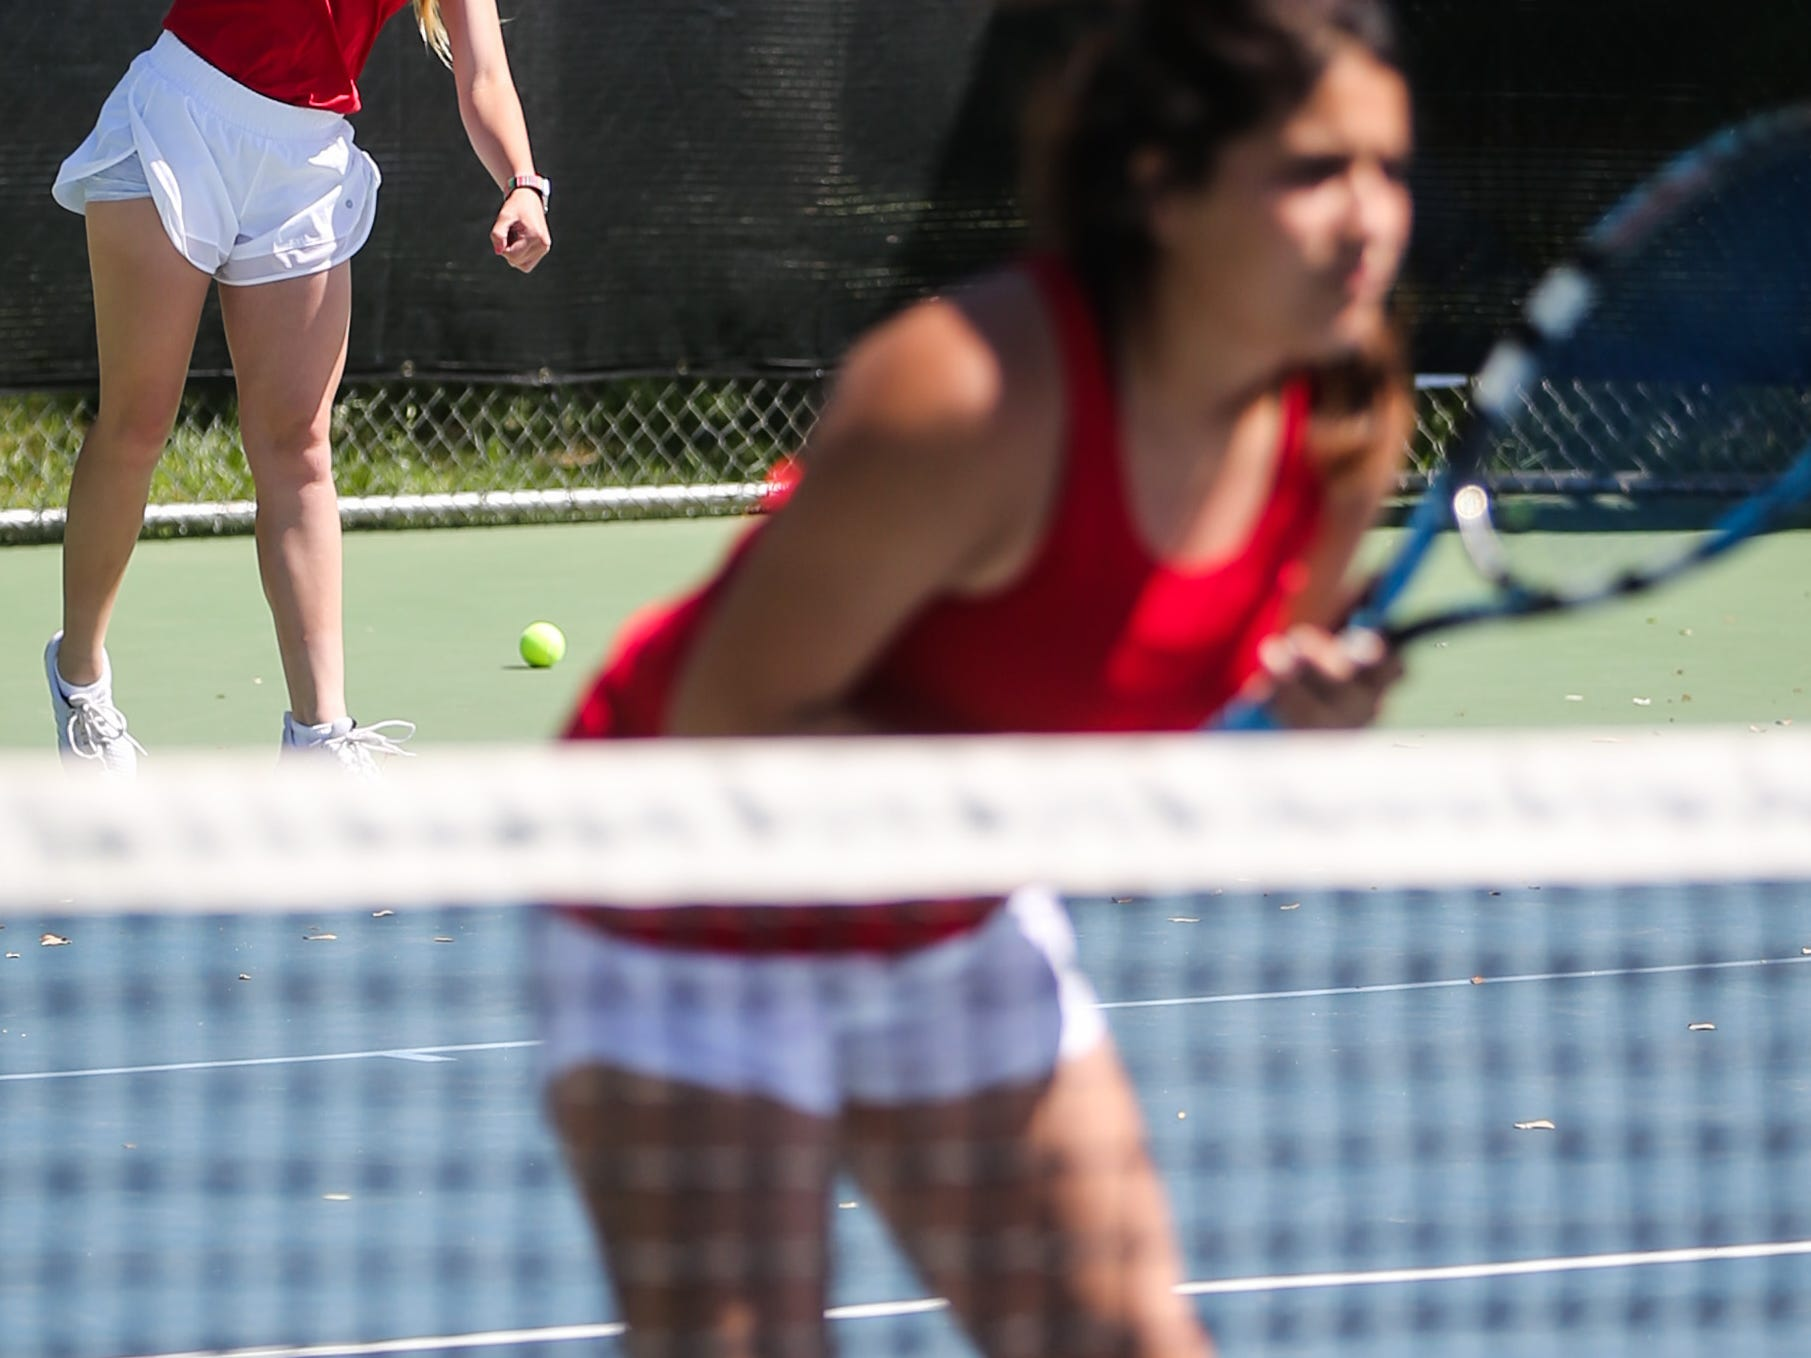 Chillicothe's Ryan Knowles serves during the doubles game with partner Melanie Correa during the region II -1A tennis championship Thursday, April 18, 2019, at Bentwood Country Club.